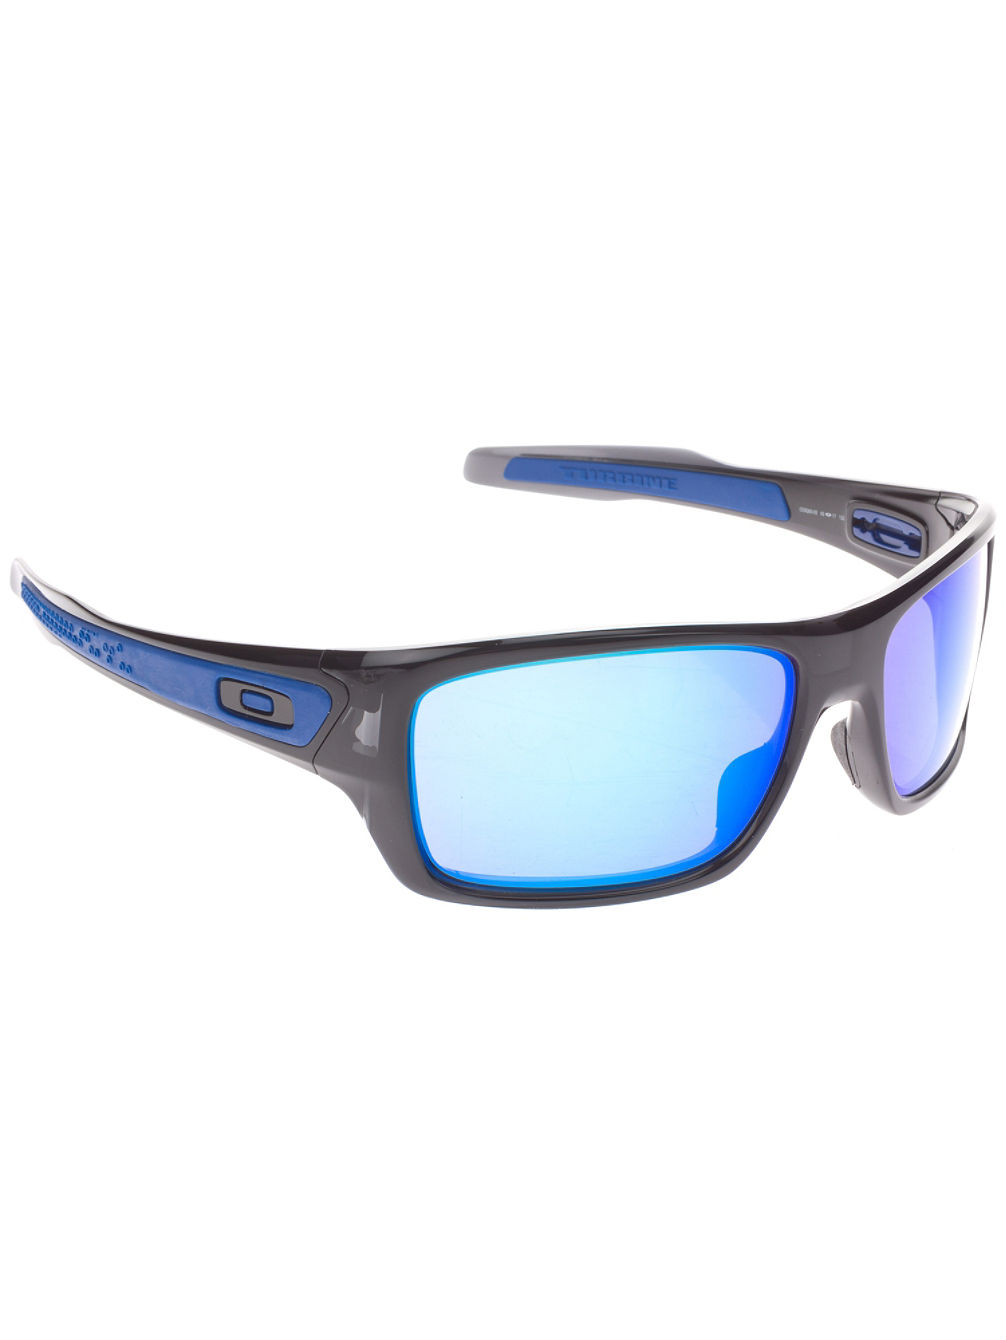 Turbine black INK Sonnenbrille